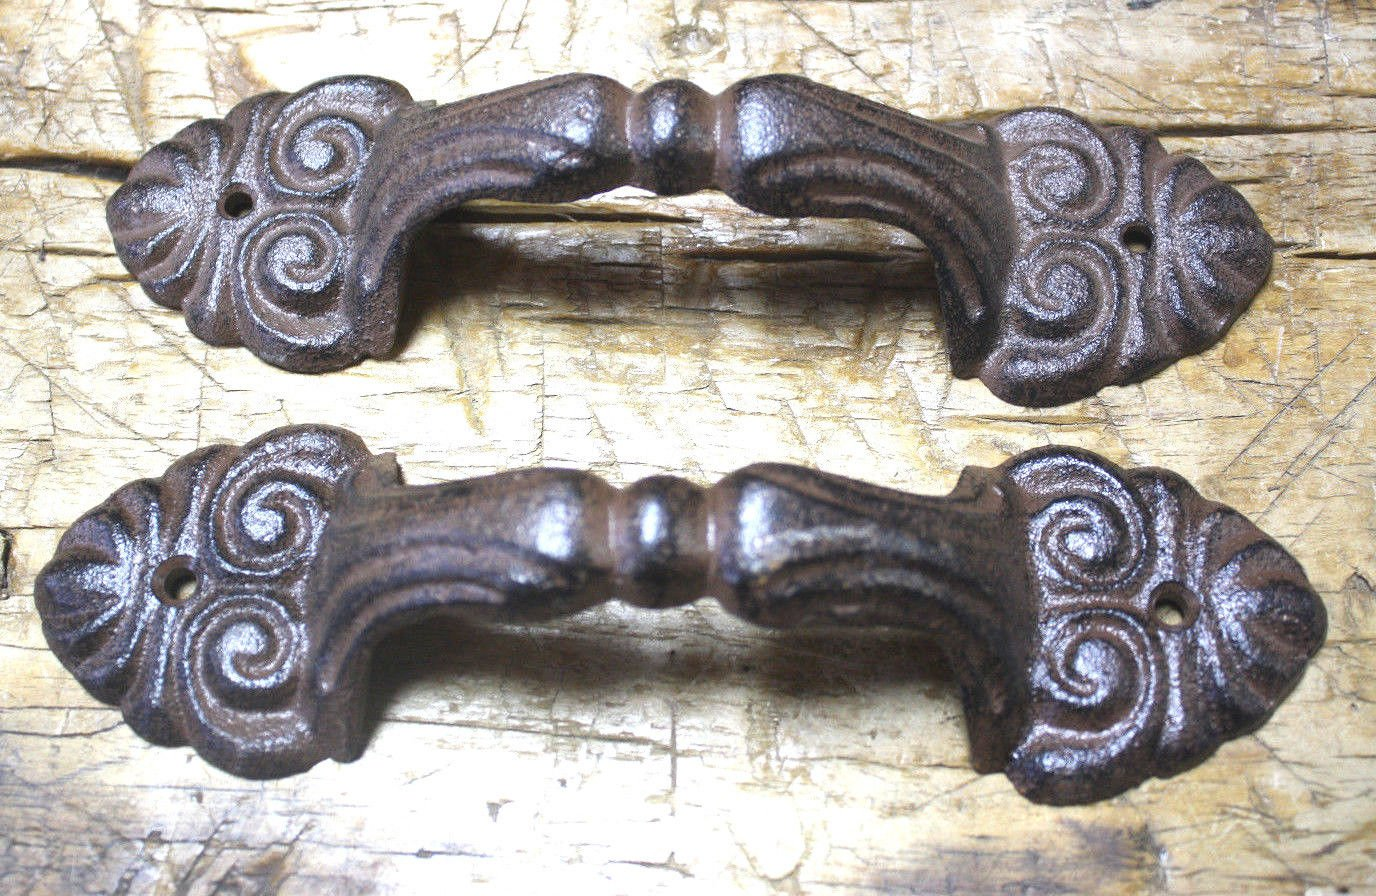 Home Decor 4 Large Cast Iron Antique Style Fancy Barn Handle Gate Pull Shed Door Handles #7 Perfect for Your Farmhouse